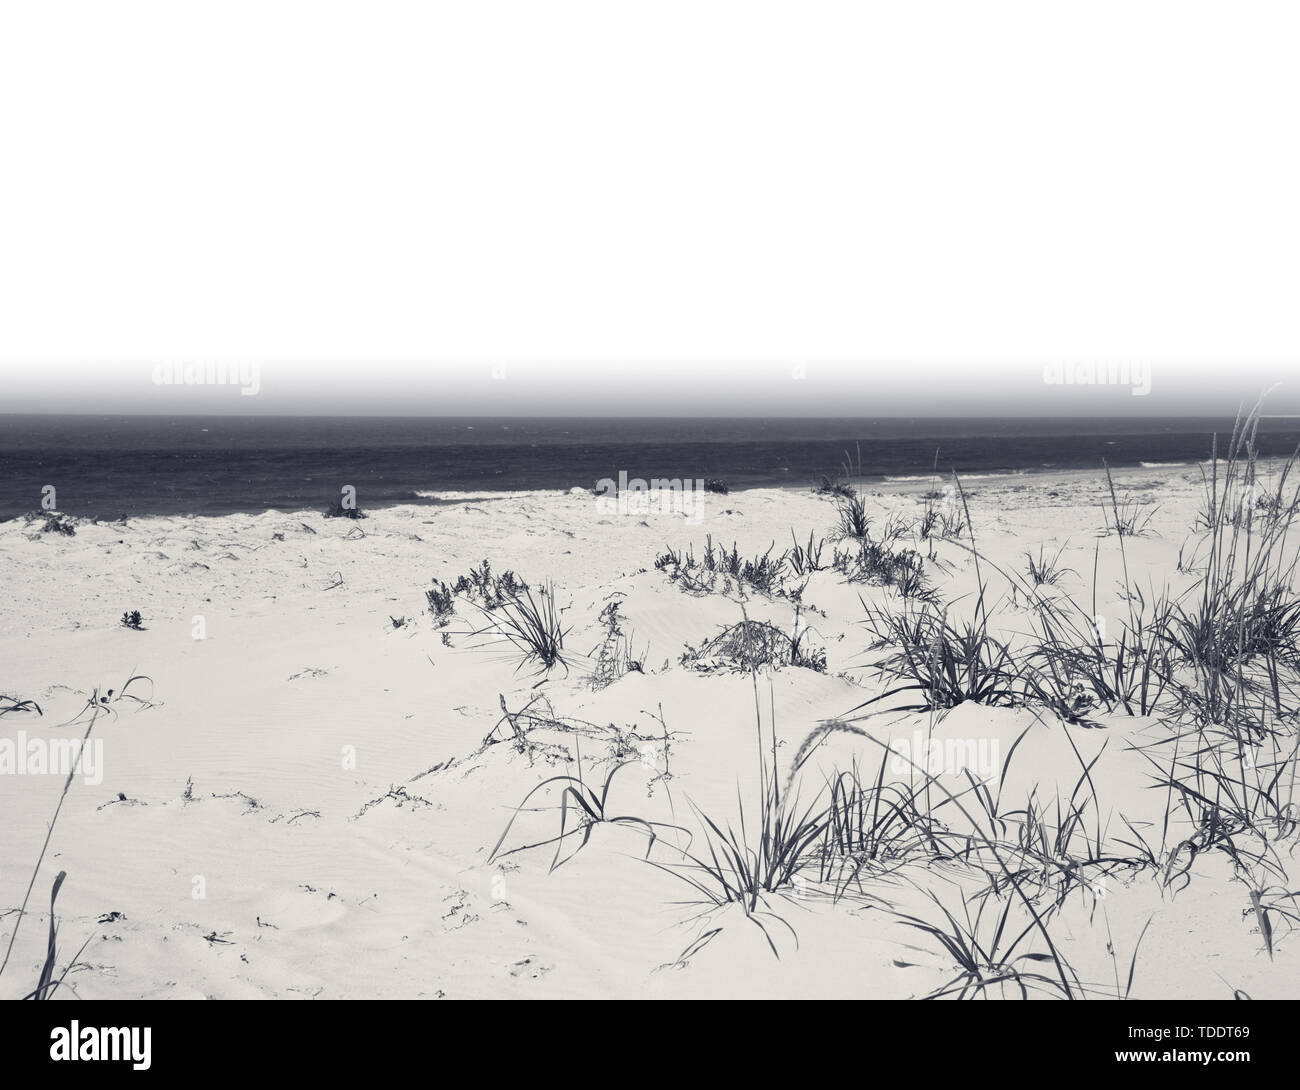 Sea and sand on deserted beach at hot summer day black and white retro toned landscape with copy space